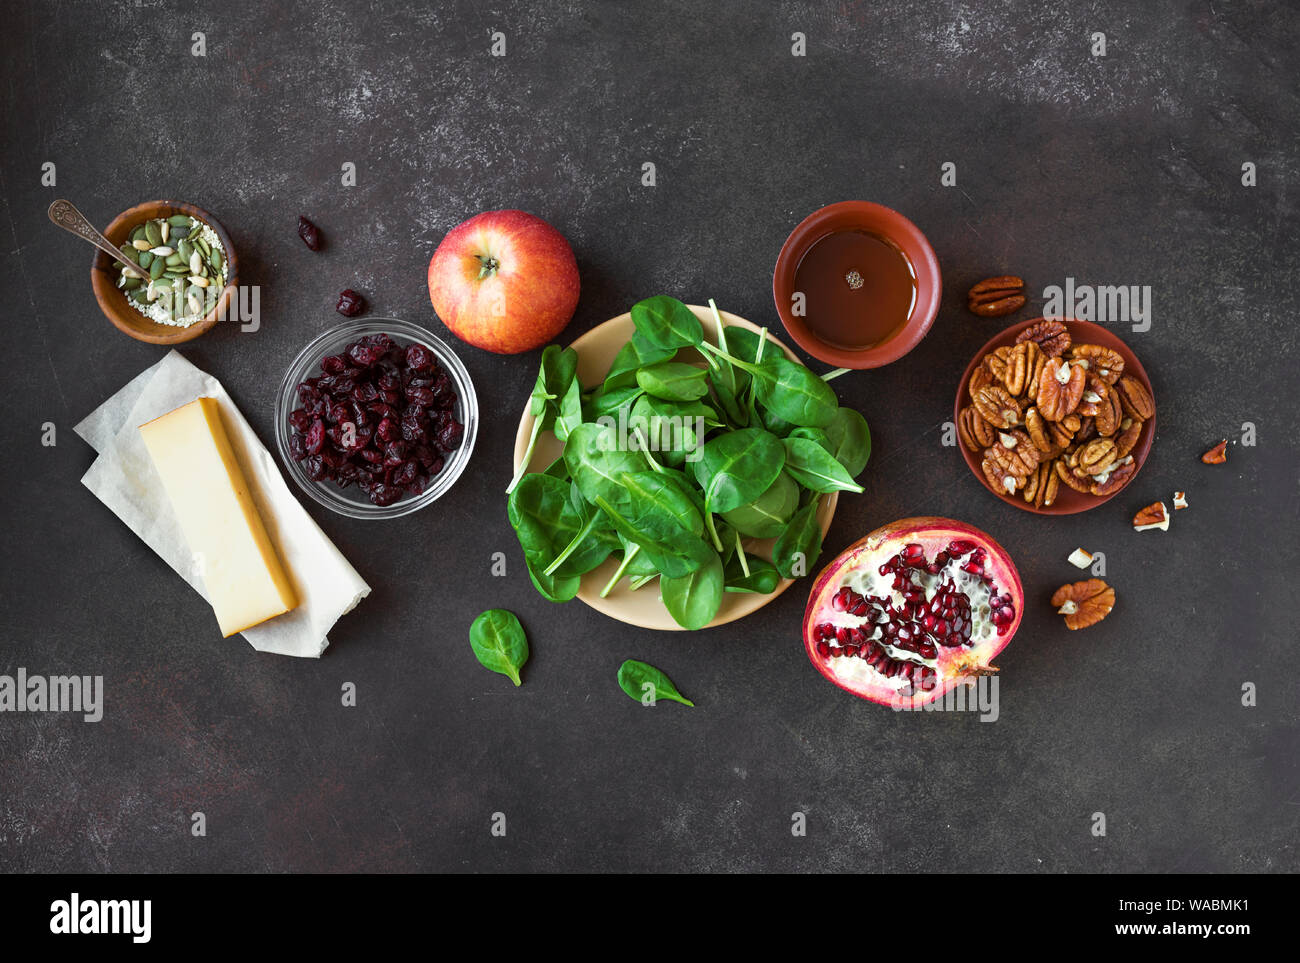 Healthy Autumnal Salad Ingredients For Cooking Healthy